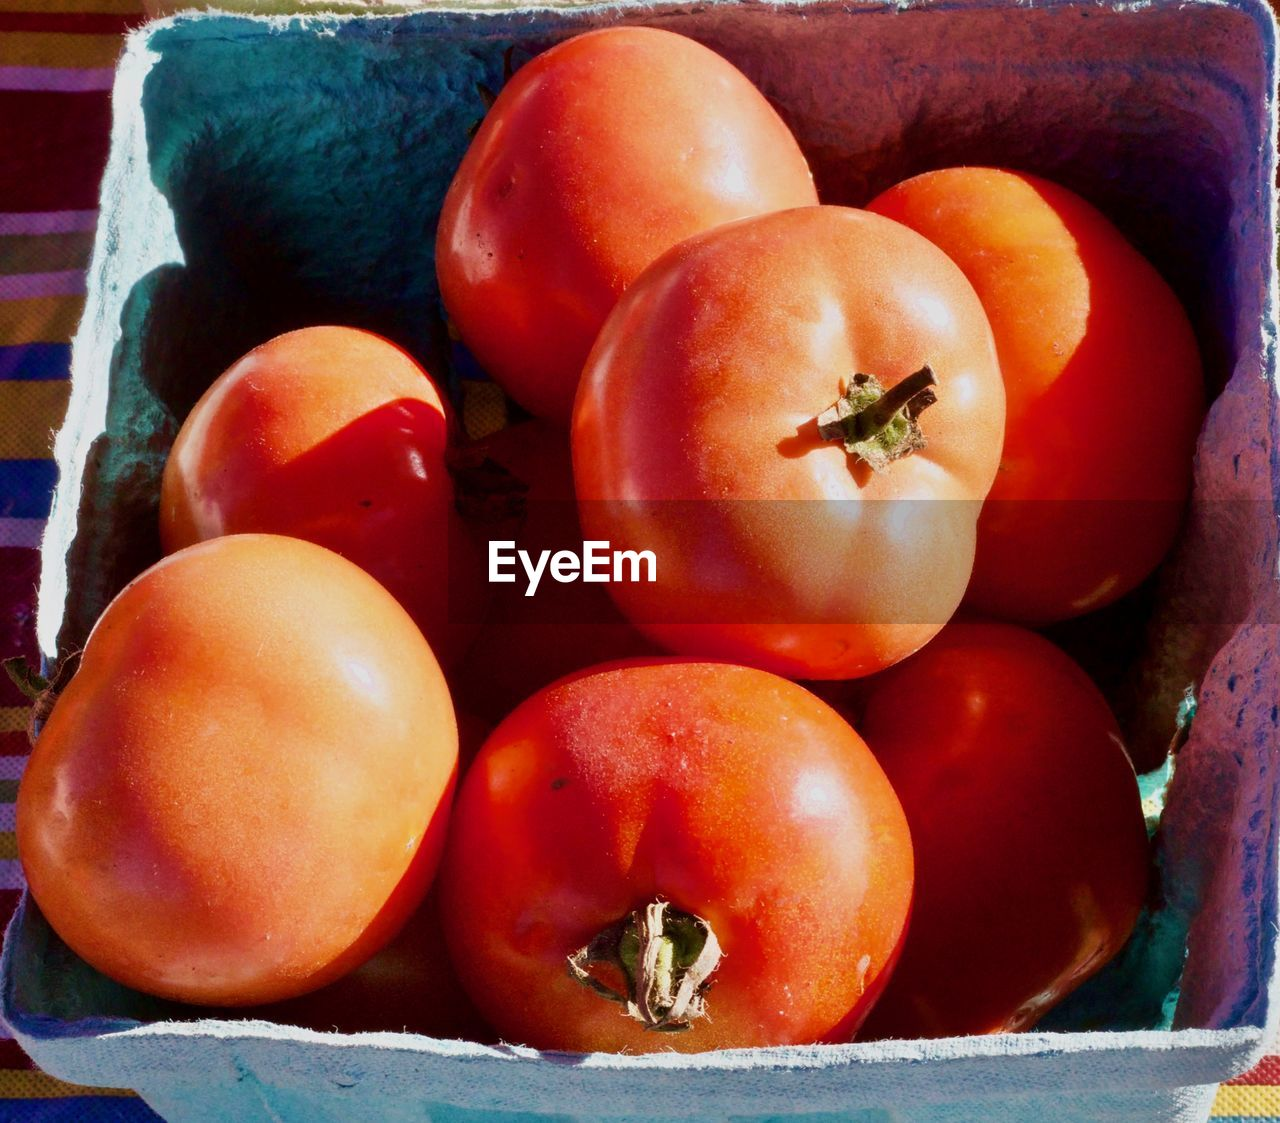 HIGH ANGLE VIEW OF TOMATOES AND FRUITS